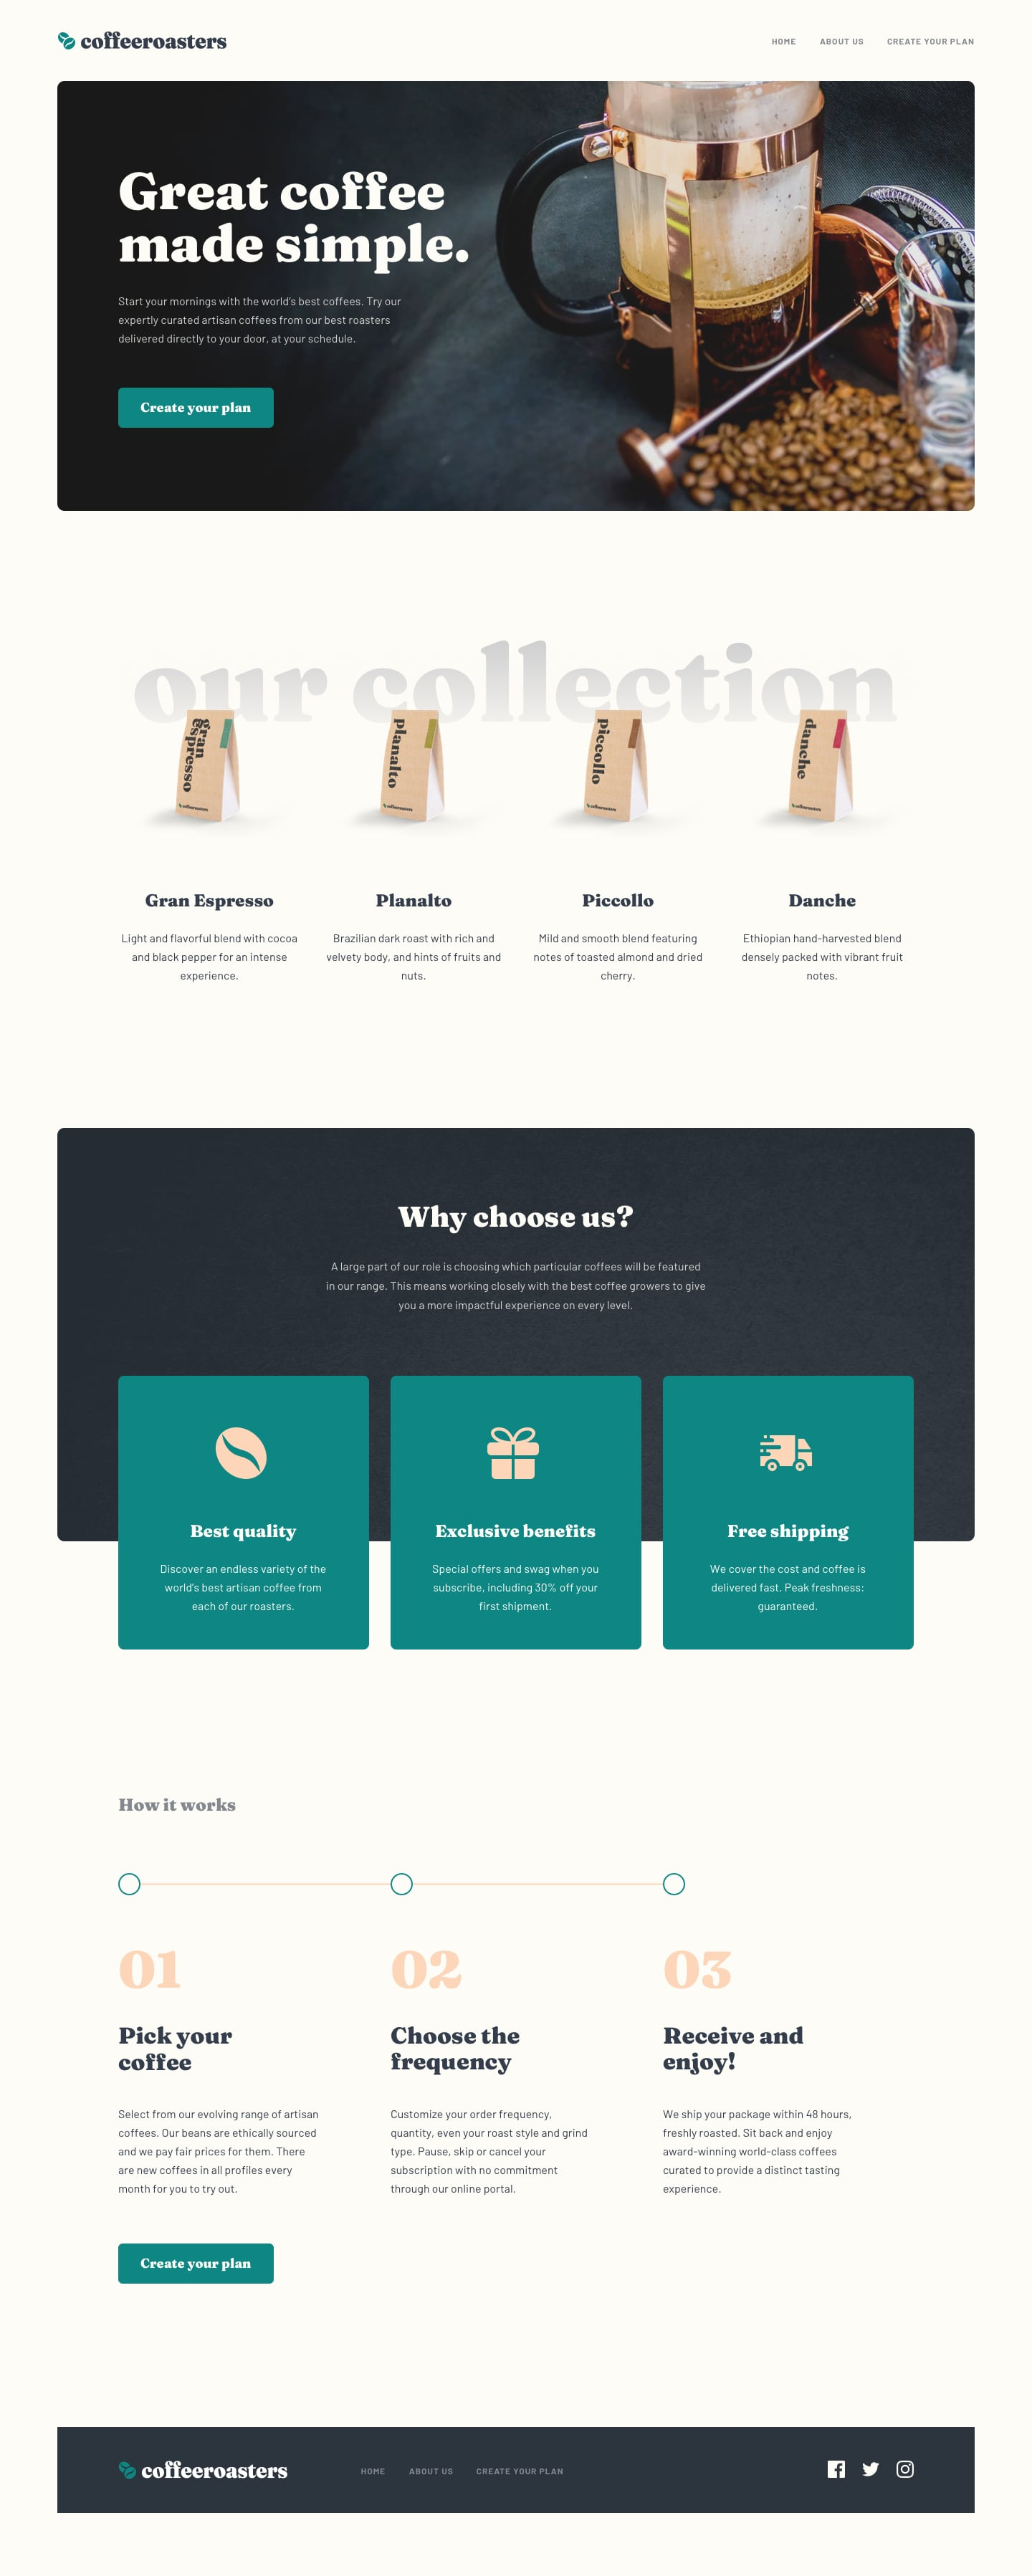 Design preview for Coffeeroasters subscription site coding challenge